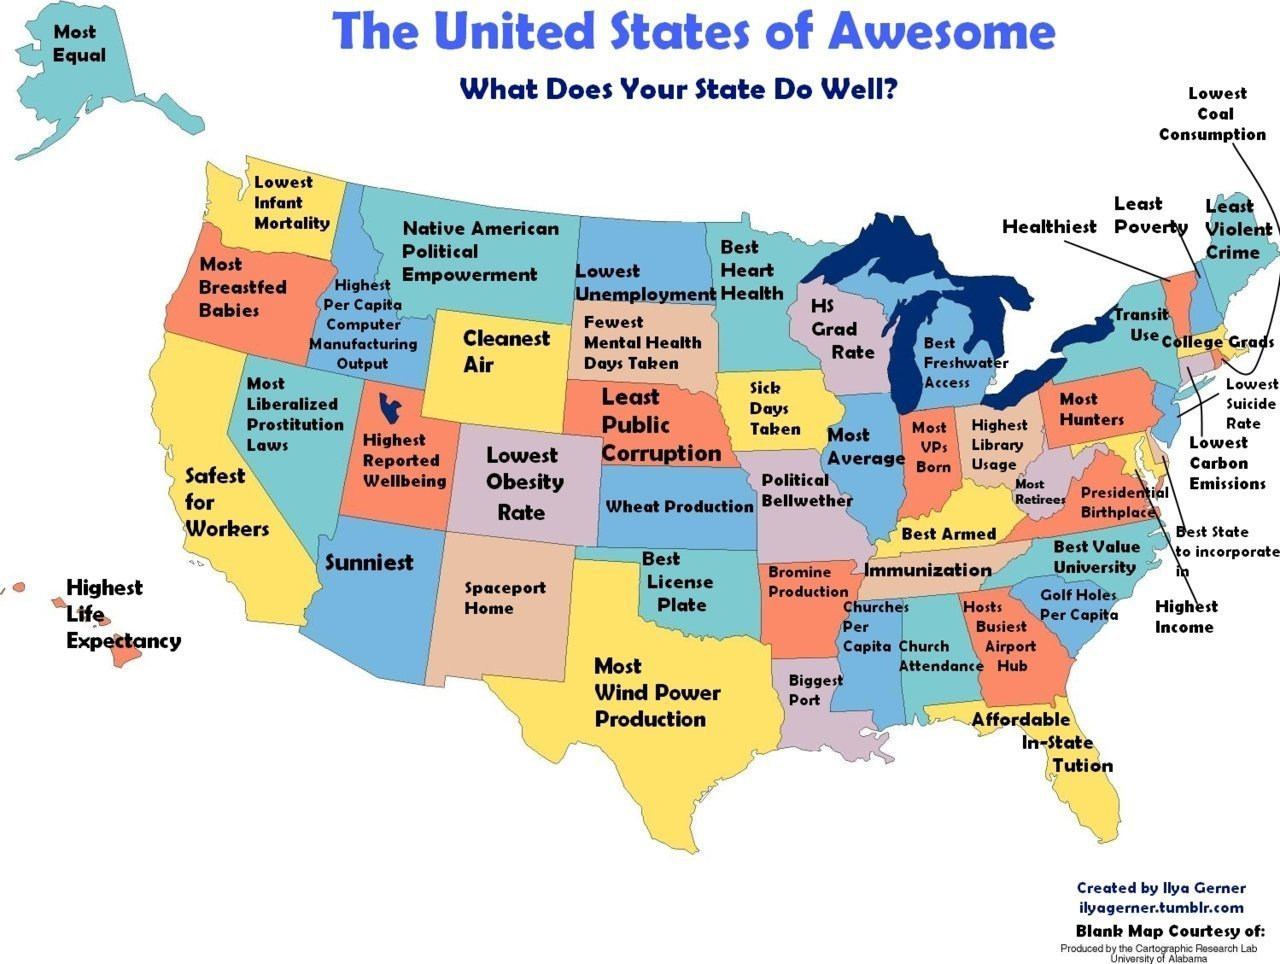 US Stereotype Maps Movies TV Shame And Awesomeness